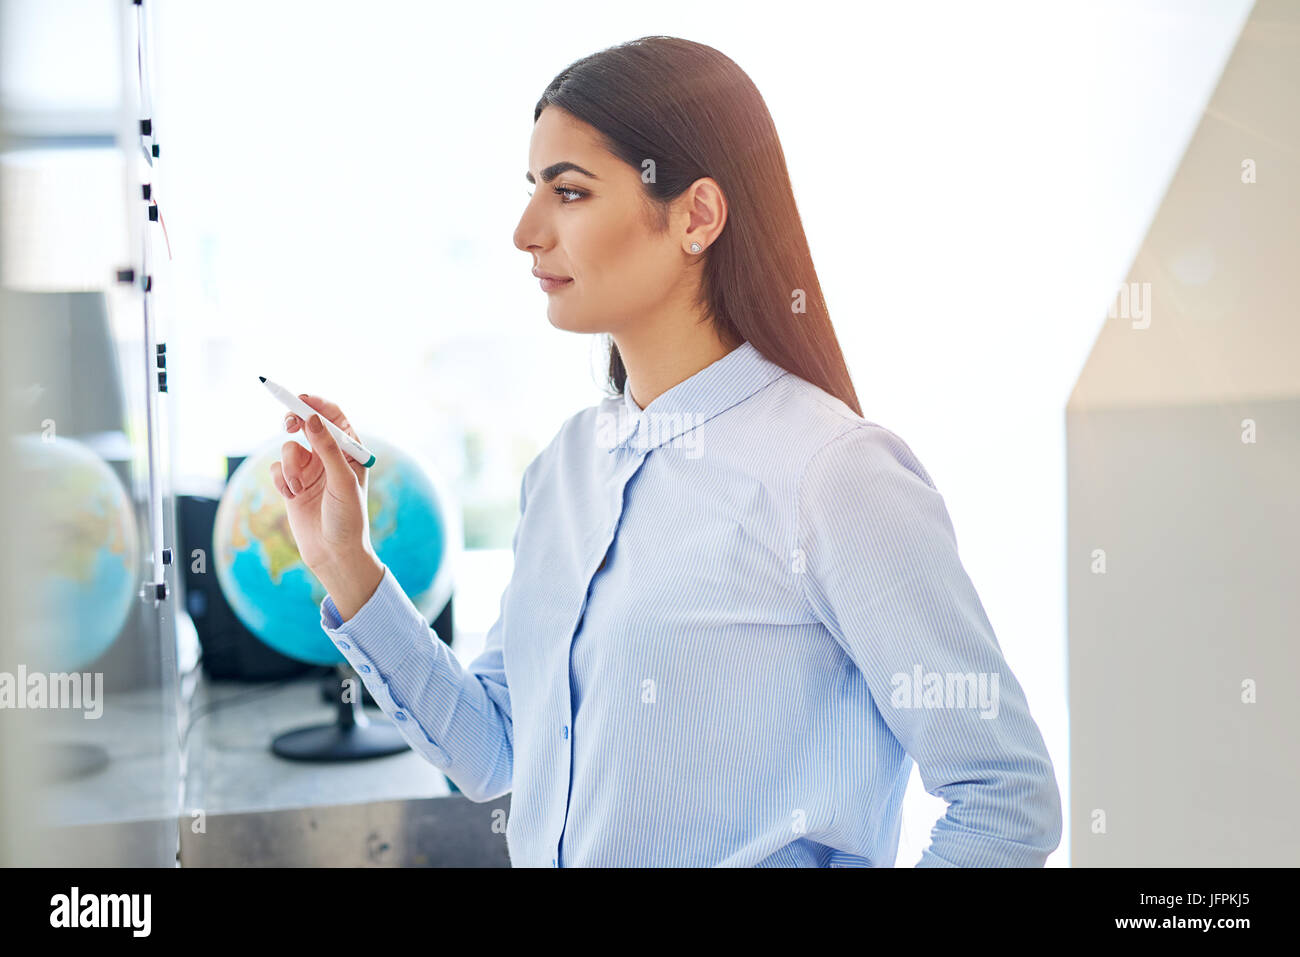 Serious young woman in blue at white board in classroom or small office with globe in background - Stock Image